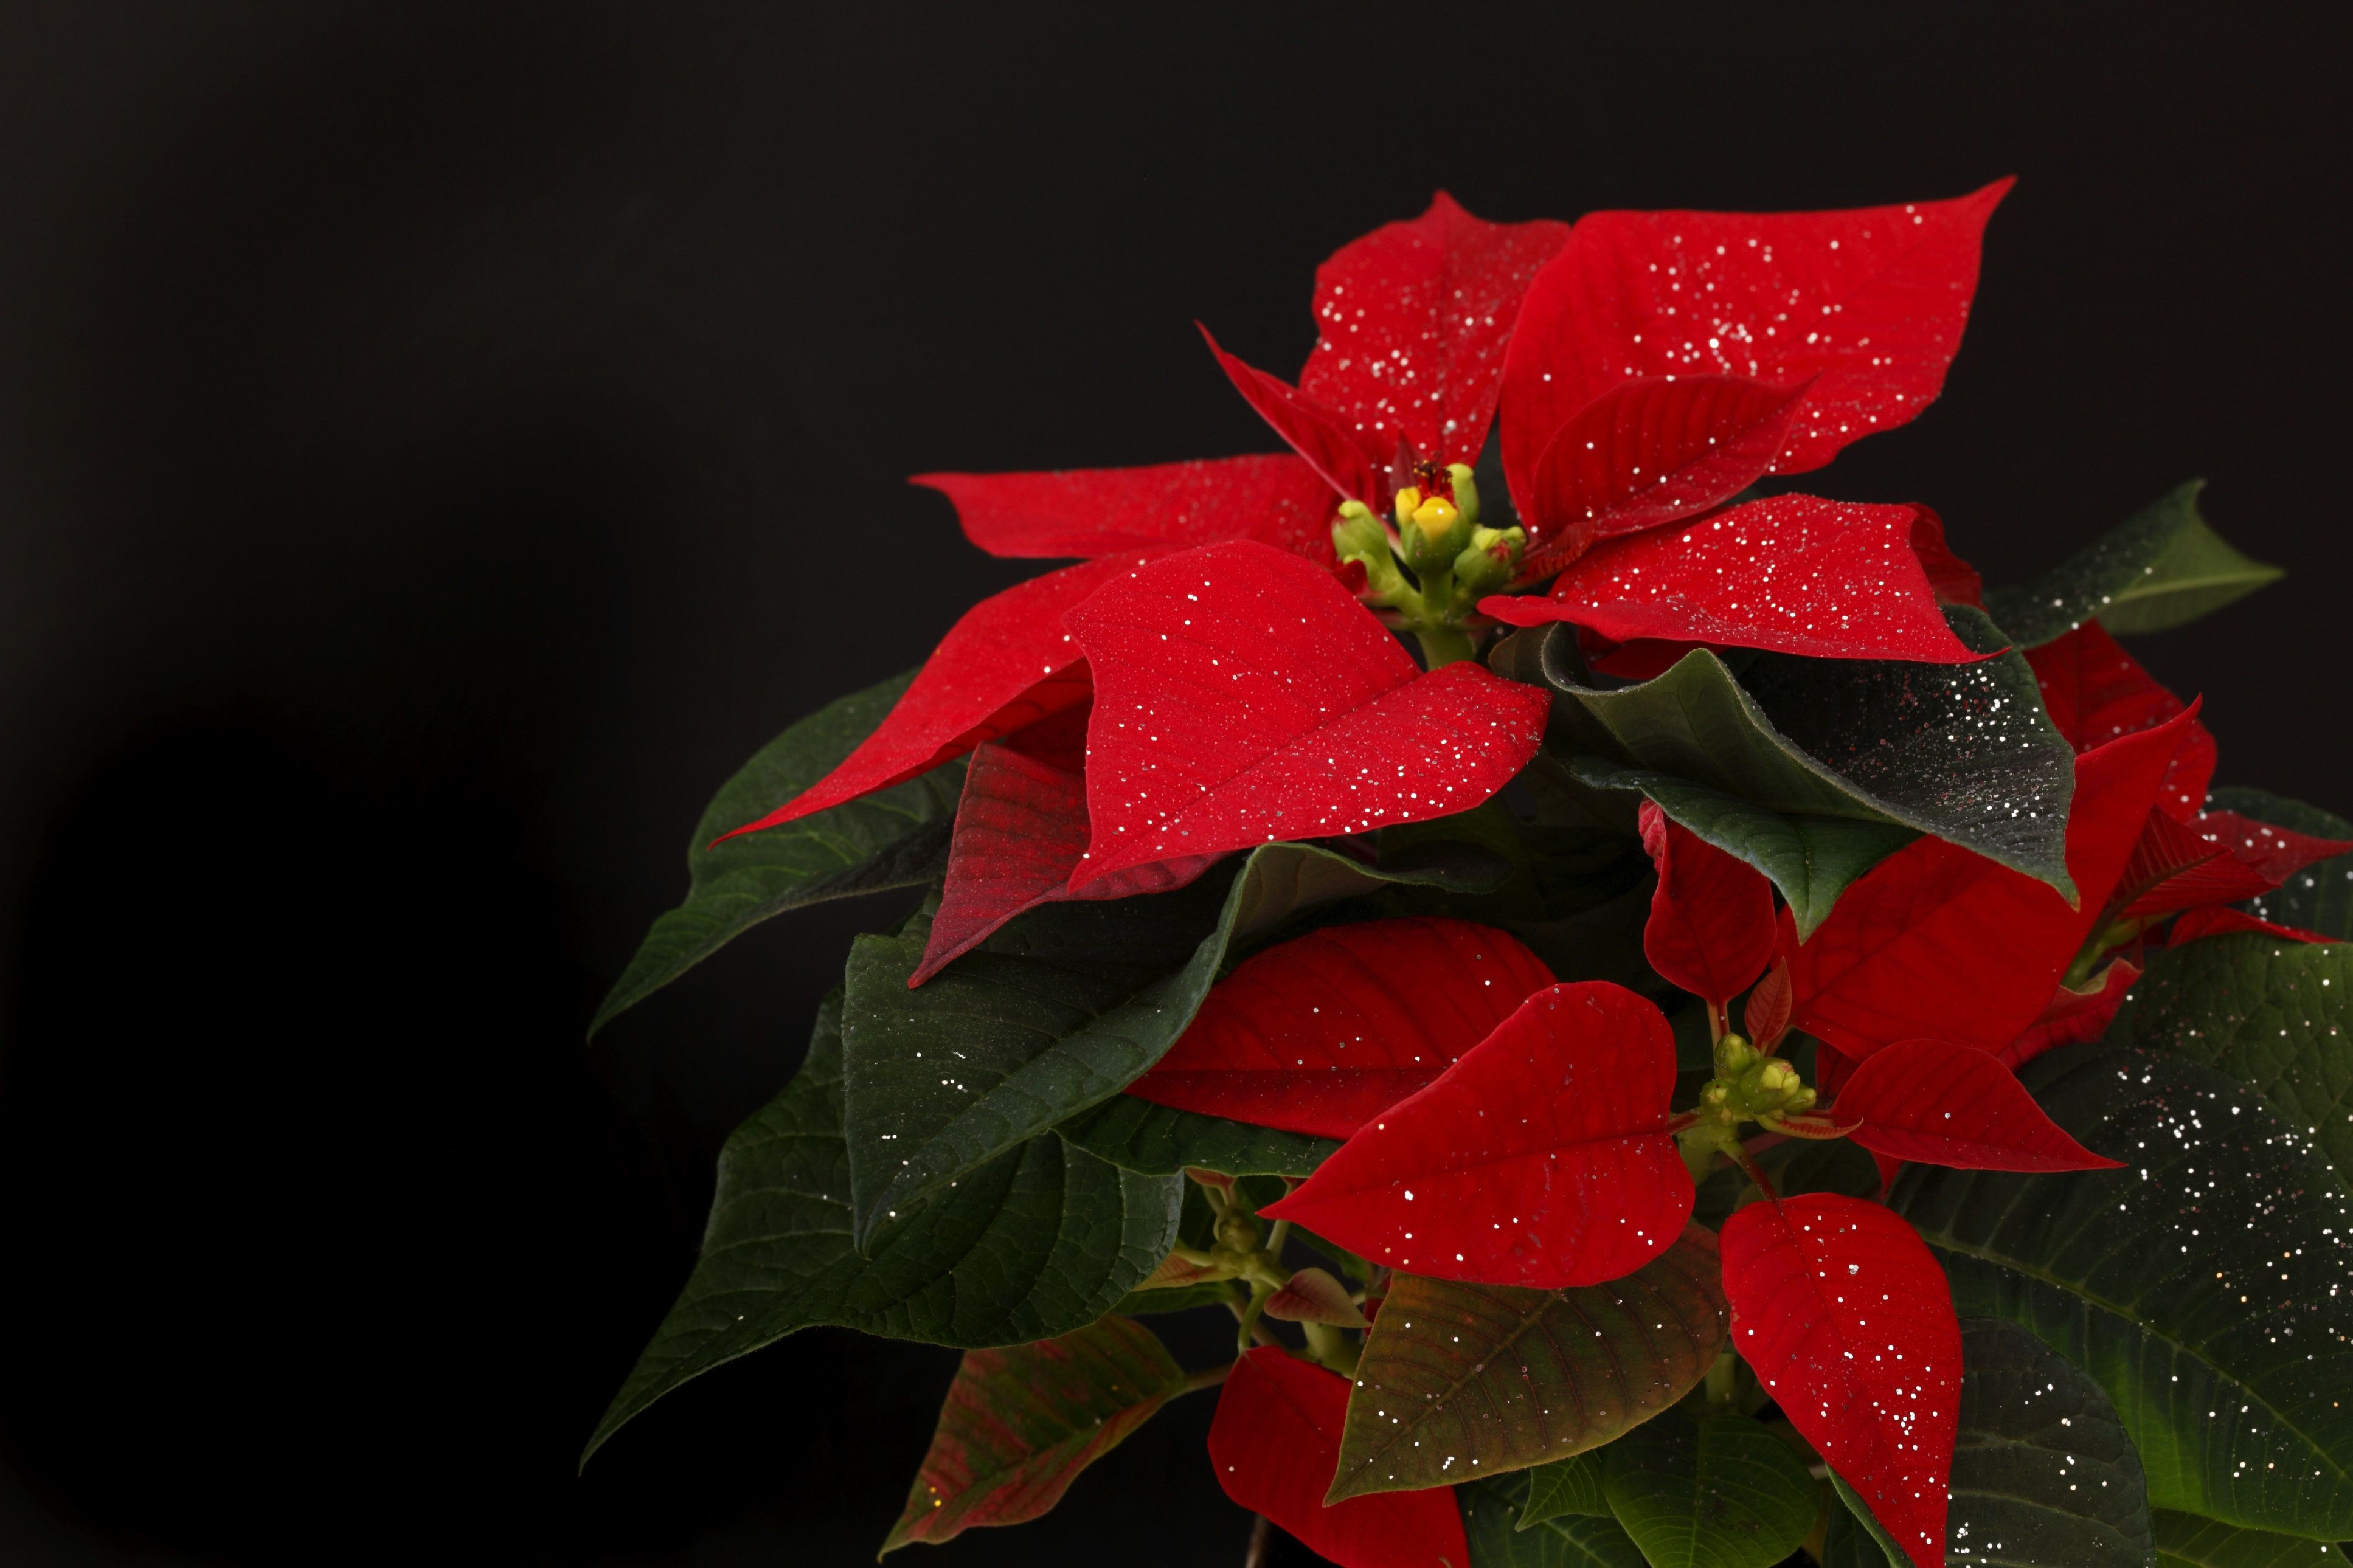 Poinsettias Are NOT Poisonous, But There's Something Else